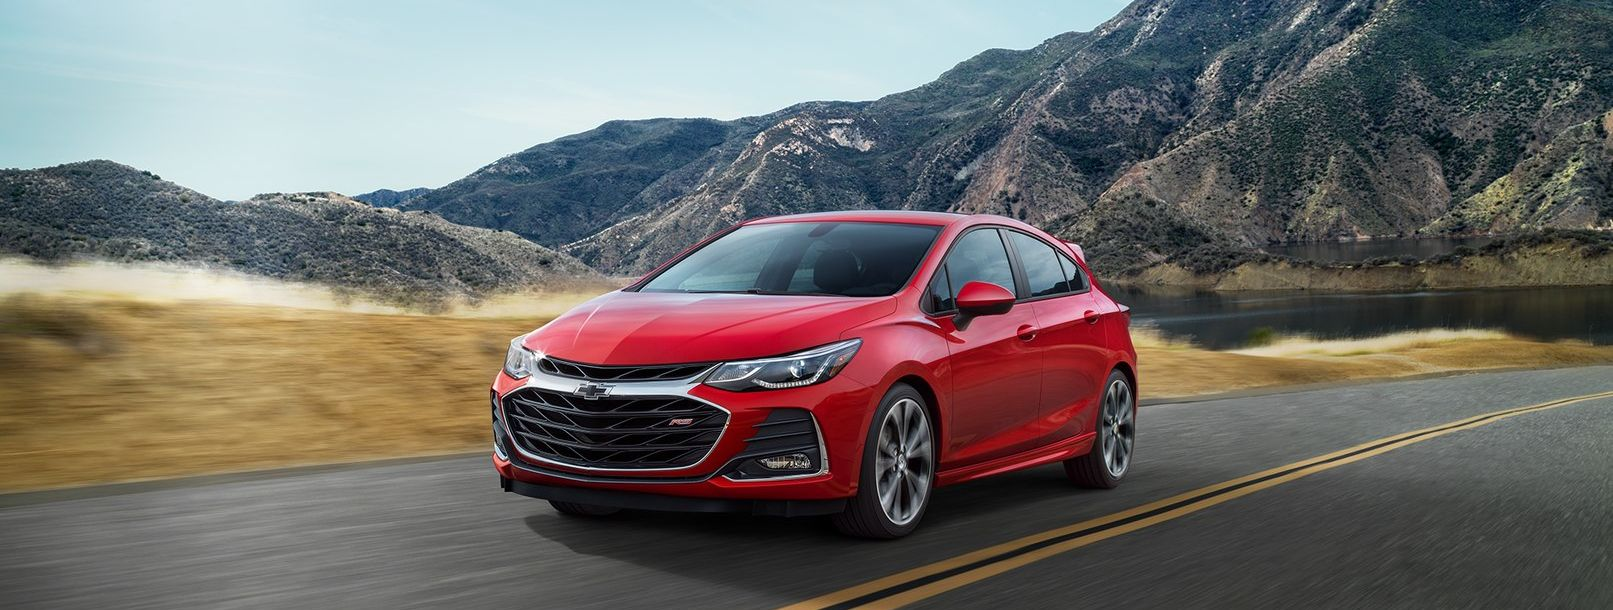 2019 Chevrolet Cruze Leasing near Washington, DC